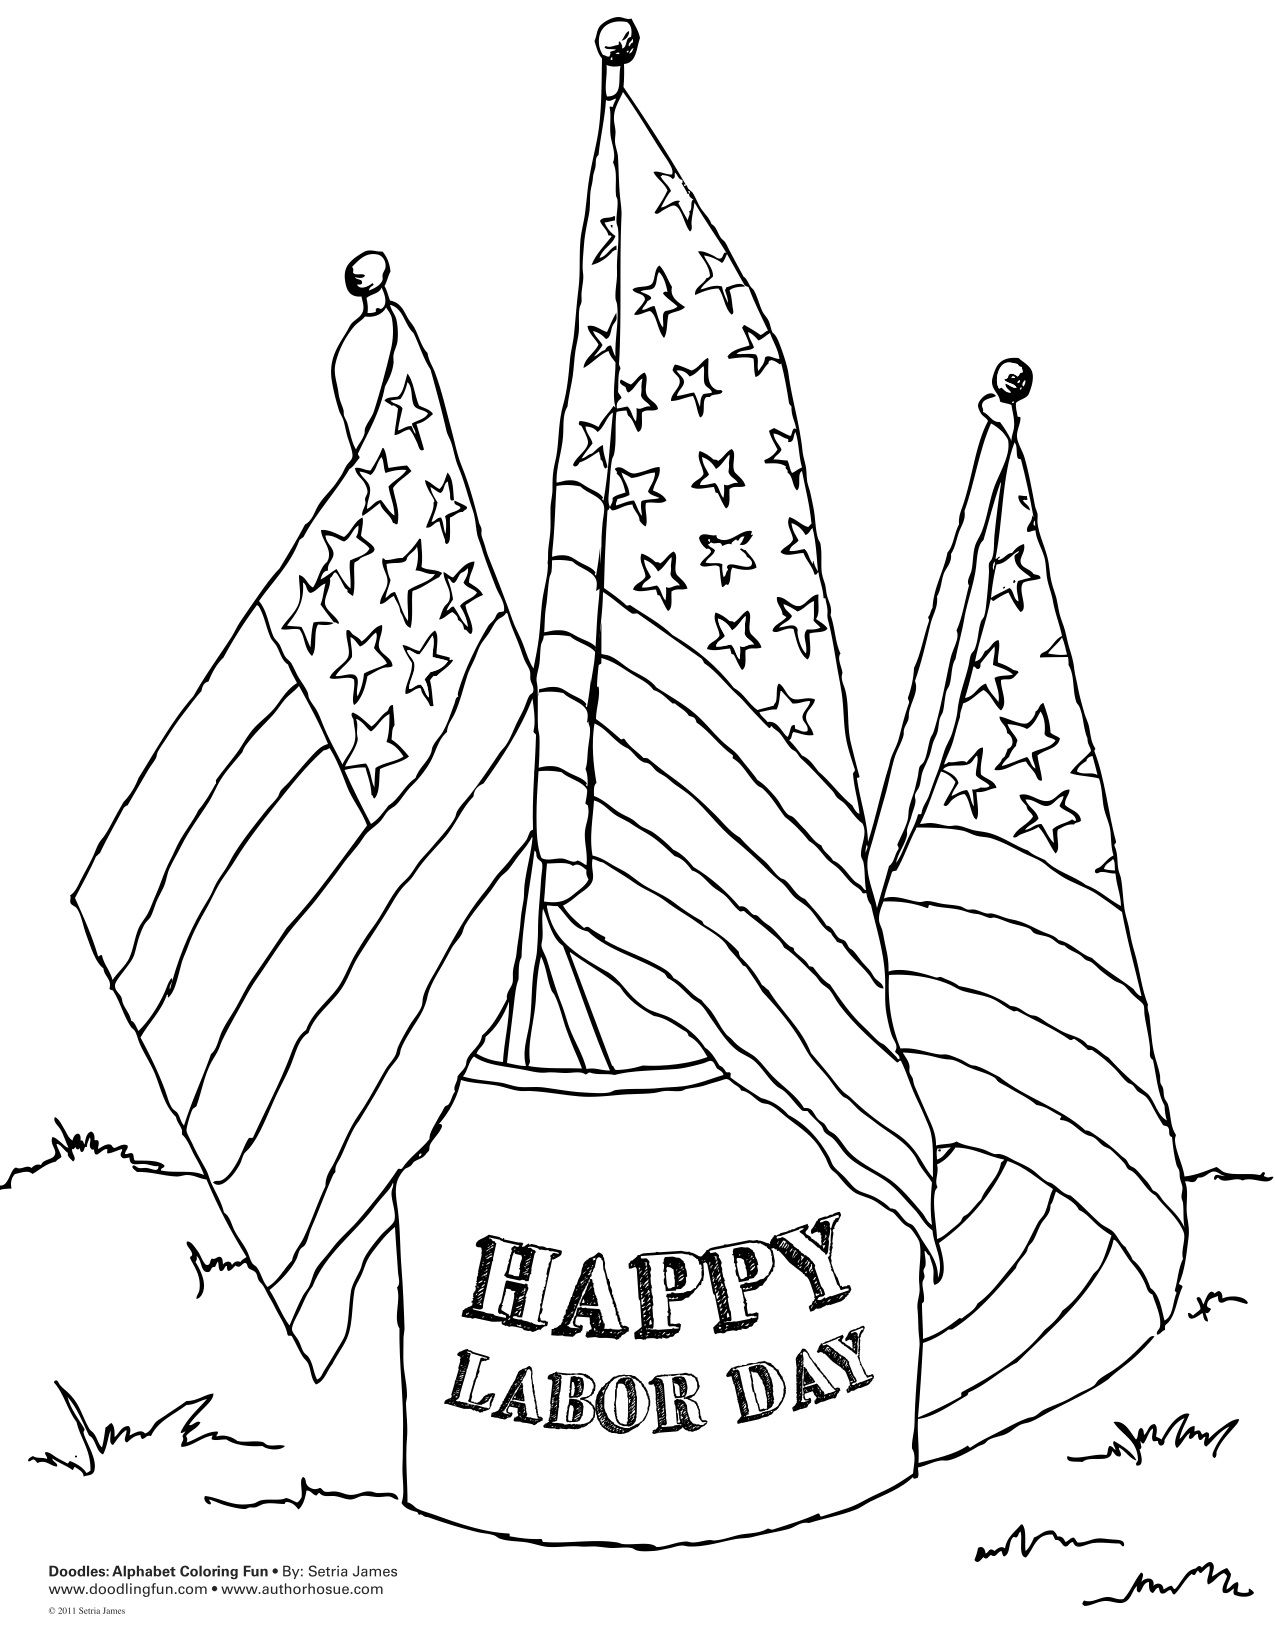 labor day coloring pages Labor Day is a great holiday to